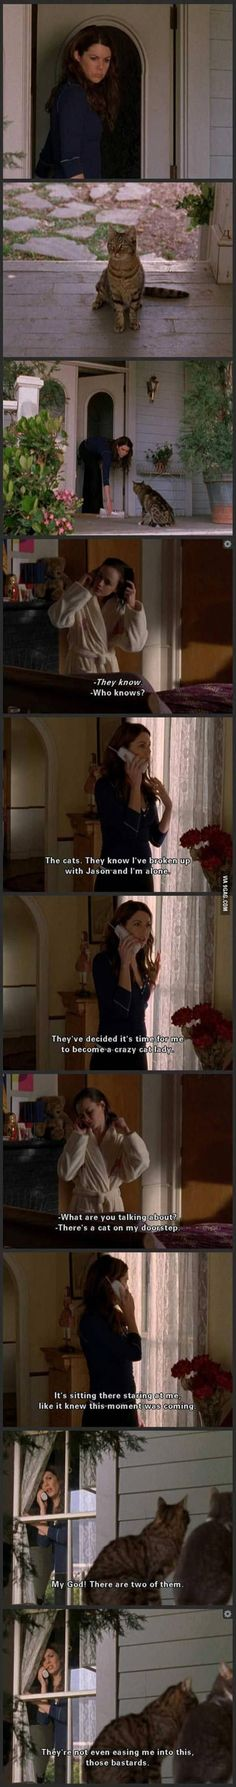 Gilmore Girls ~ Hilarious, so this is how you become a crazy cat lady. Girl Pictures, Best Funny Pictures, Funny Pics, Funny Memes, Animal Pictures, Funny Quotes, Babette Ate Oatmeal, And So It Begins, Lol